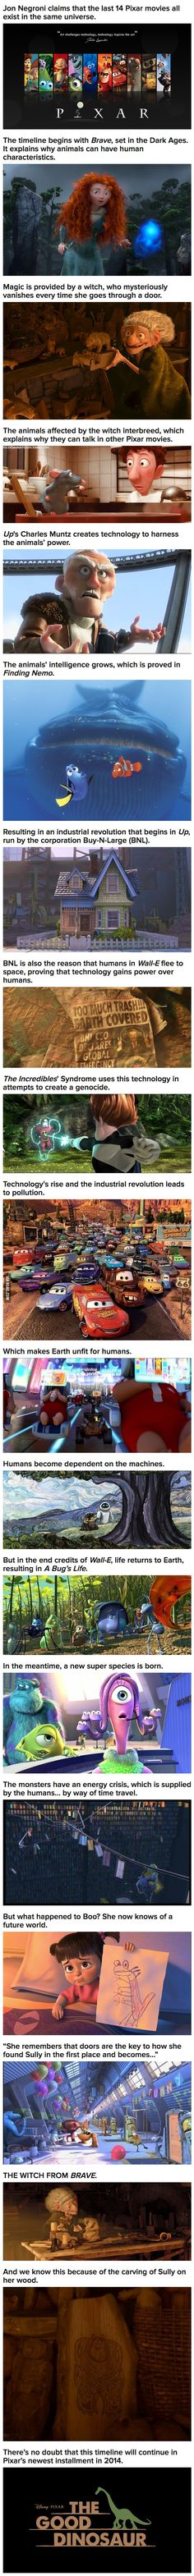 Pixar movies explained. Wow this is intense. hahaha